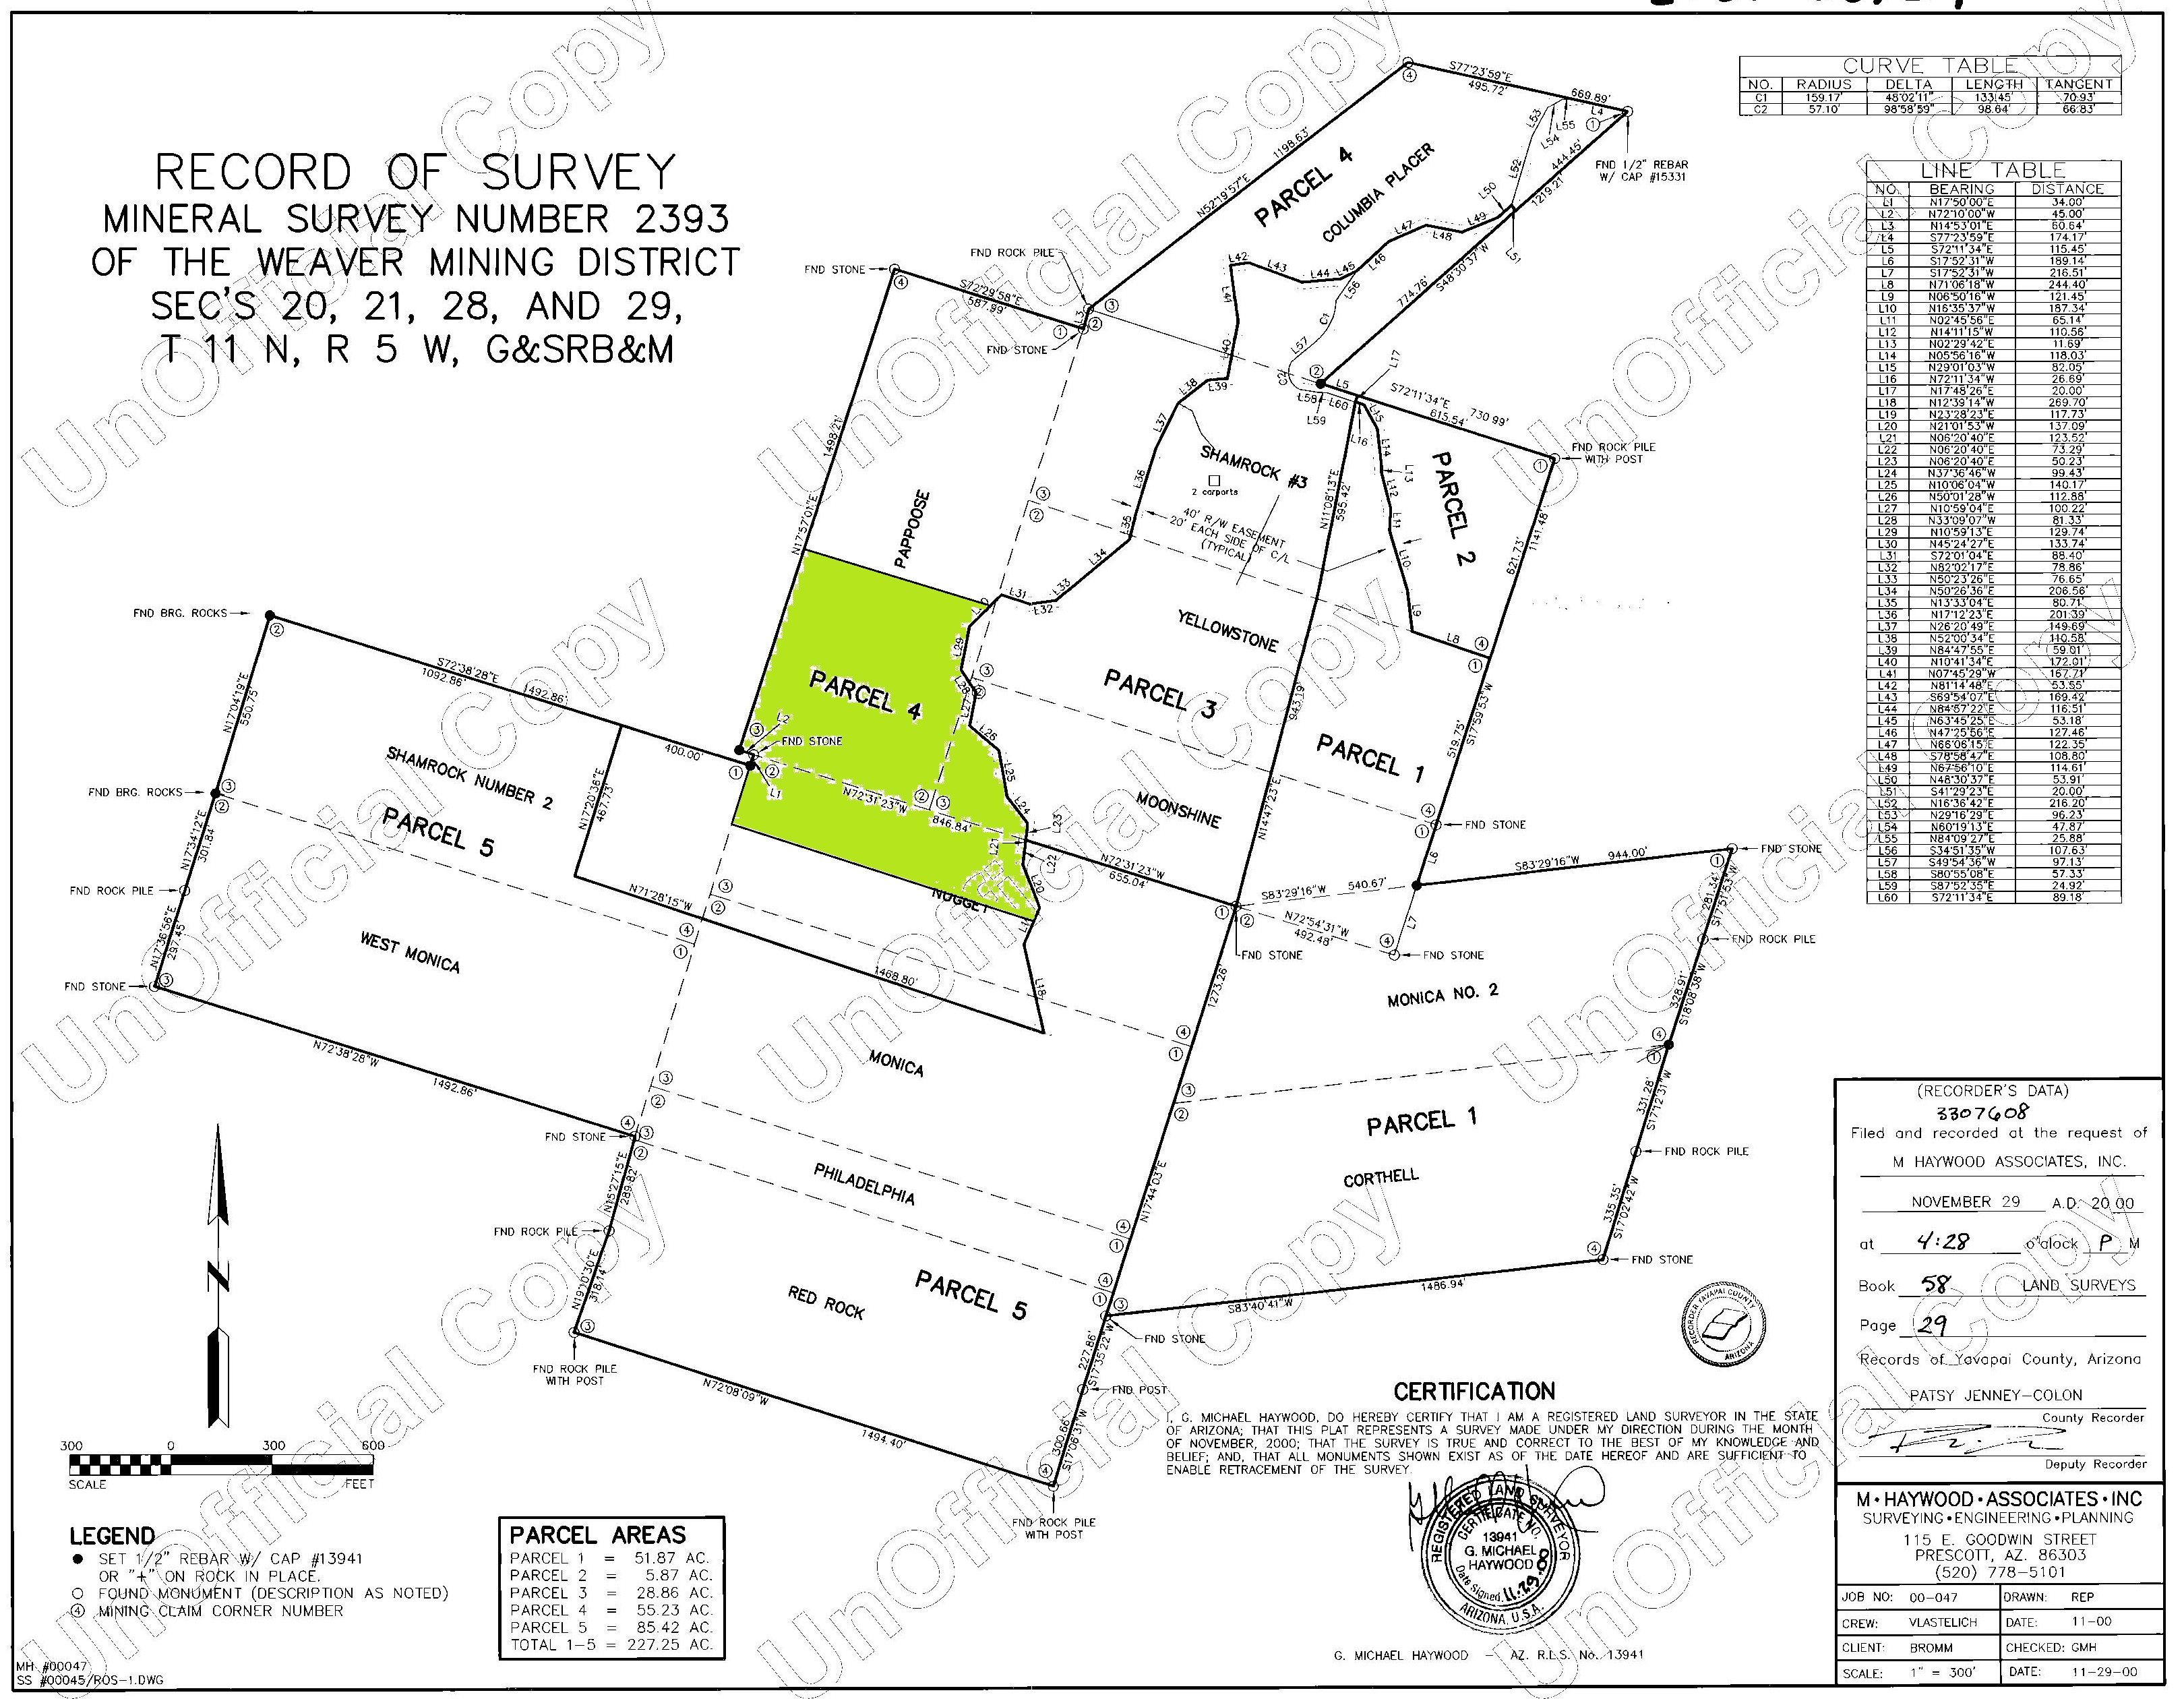 Plat map of the parcel